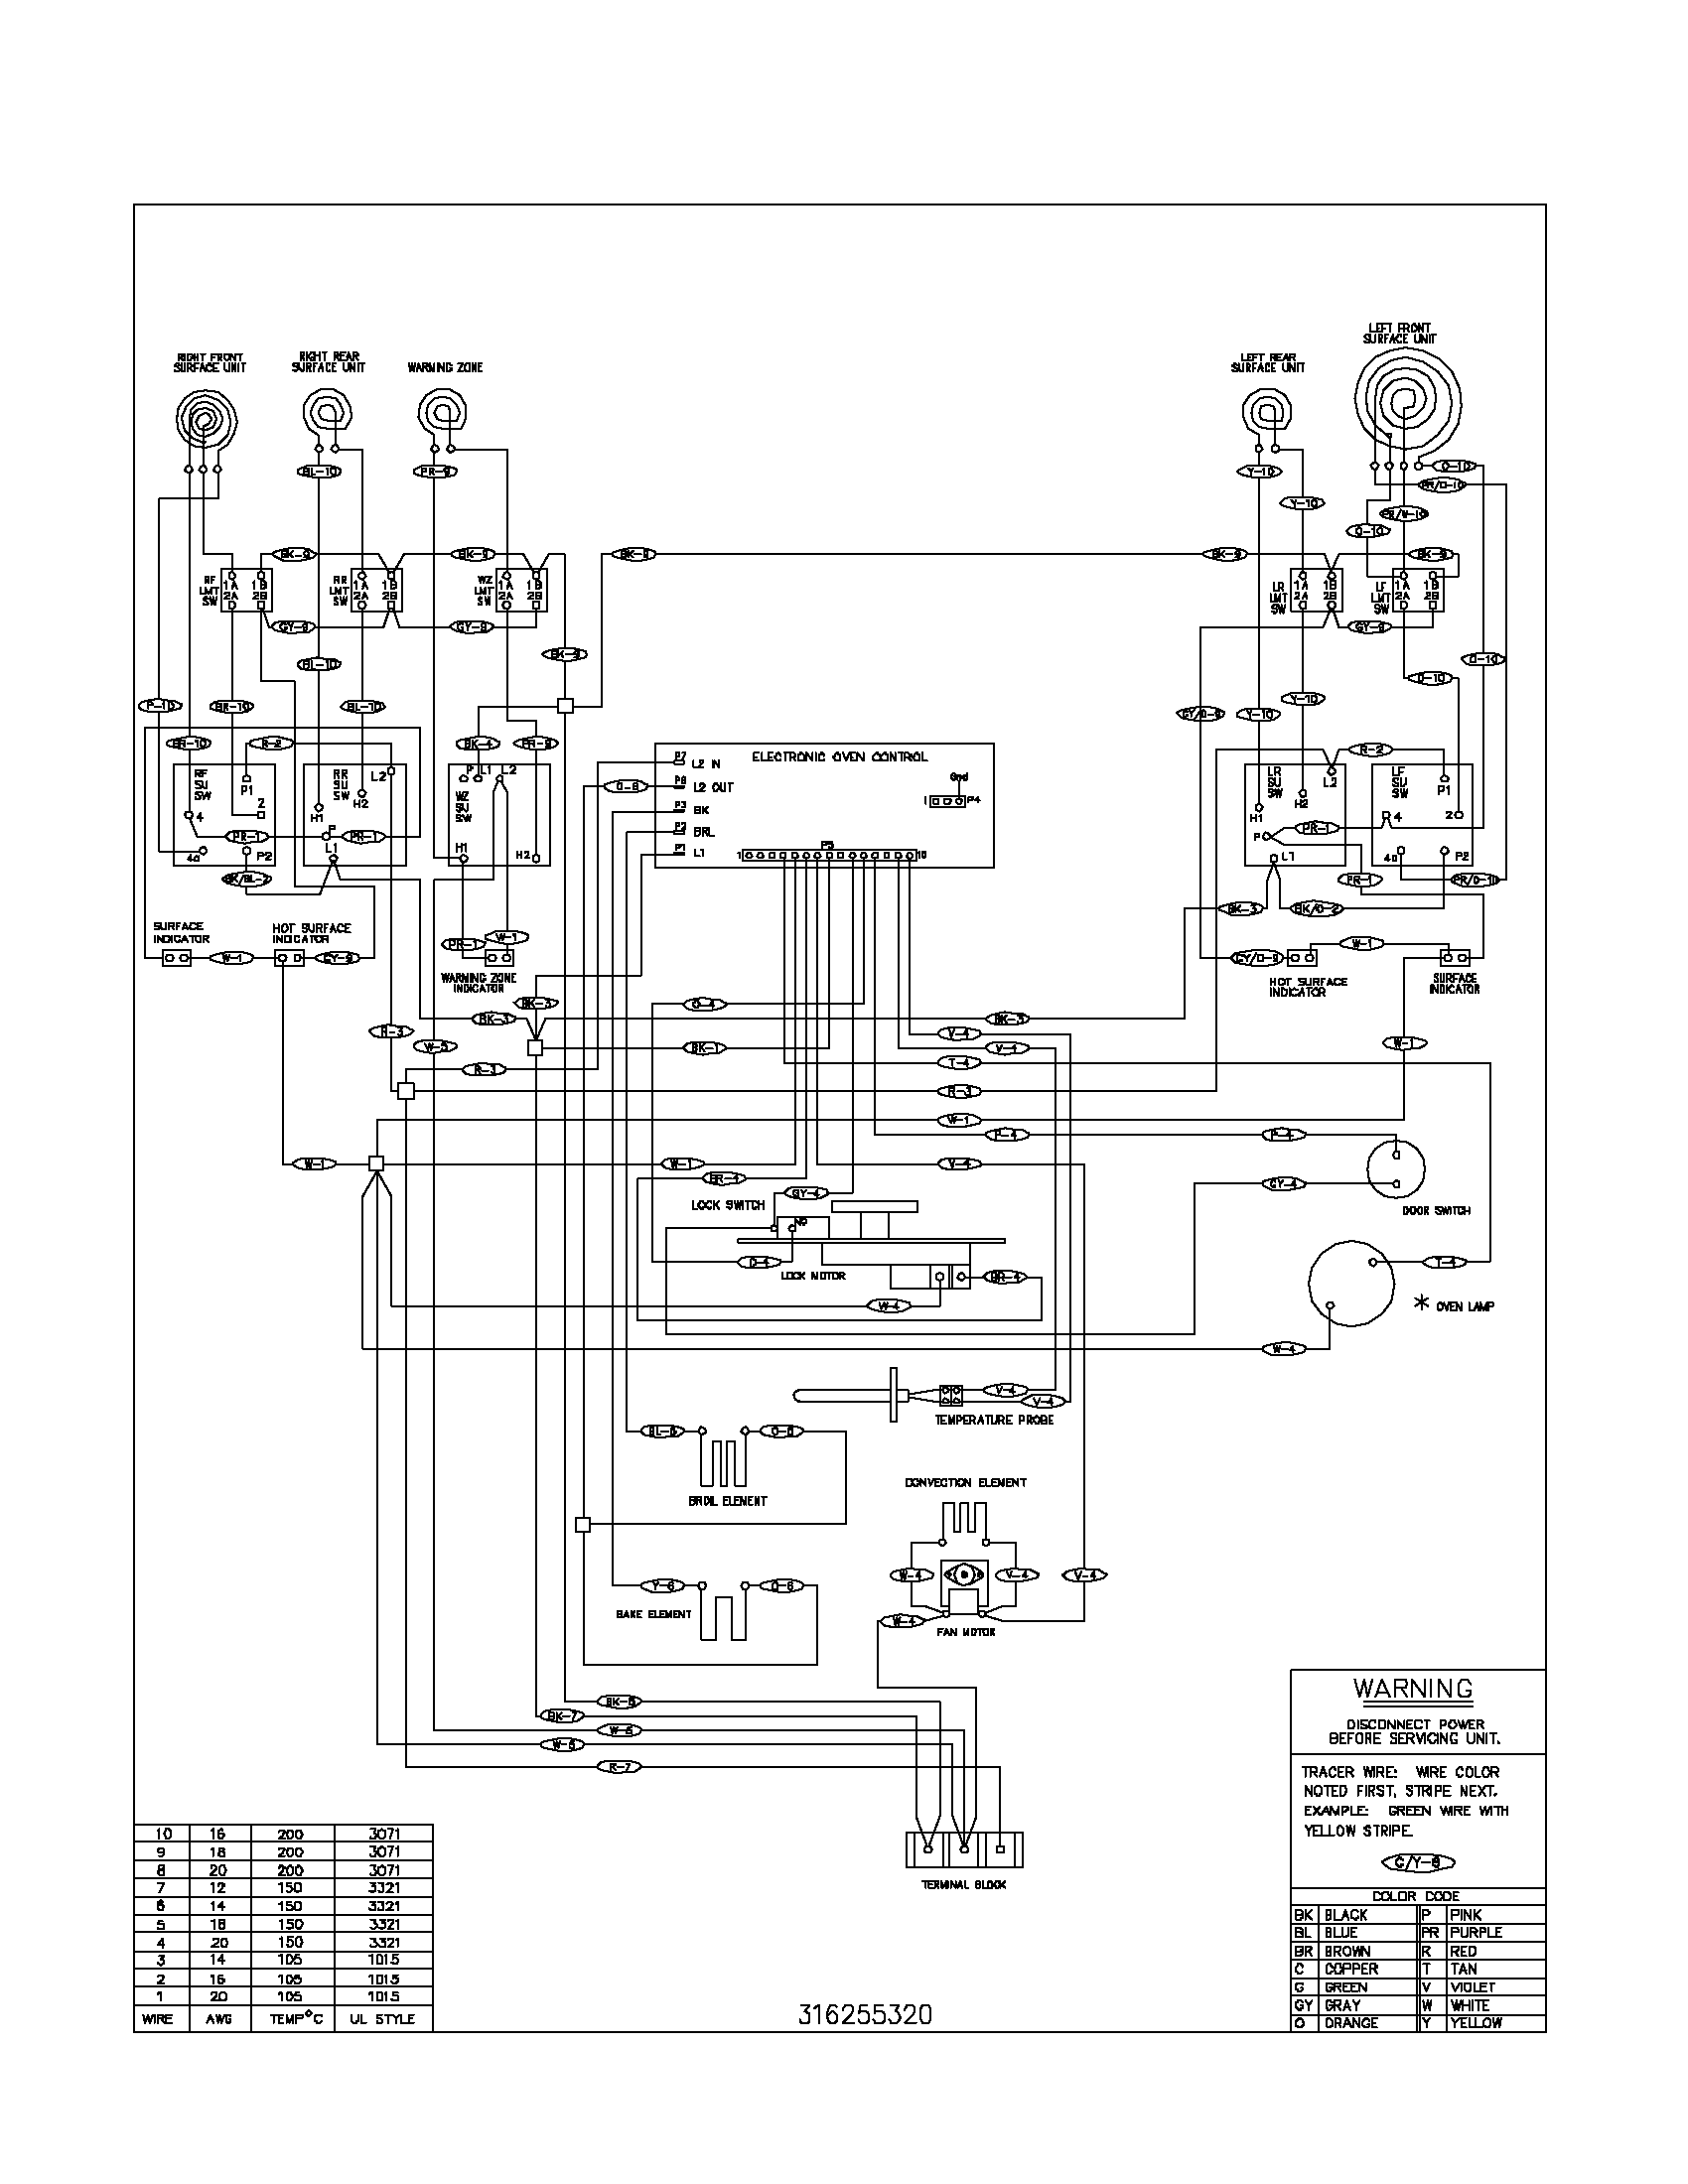 kenmore dryer electrical schematic diagram wiring diagram